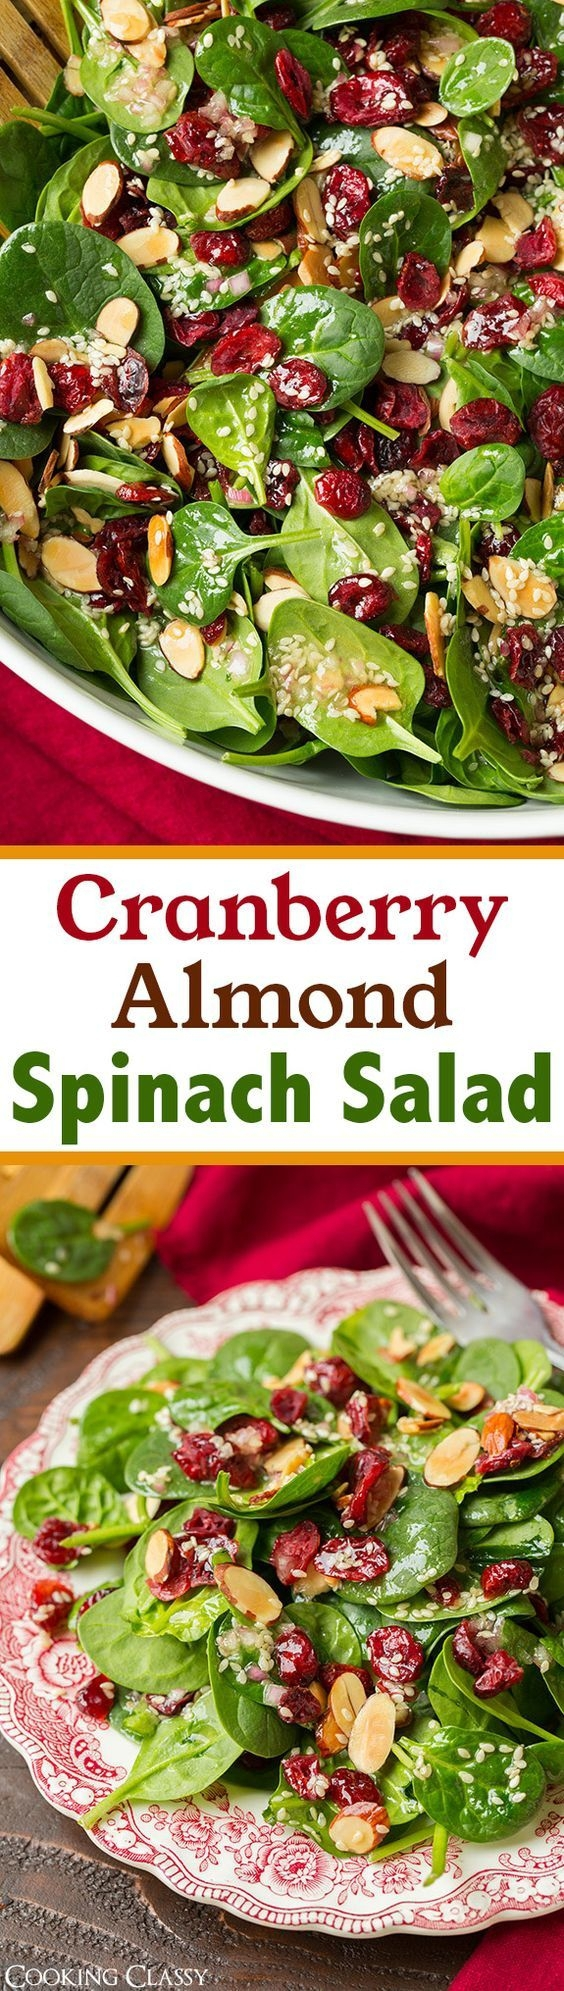 Cranberry Almond Spinach Salad